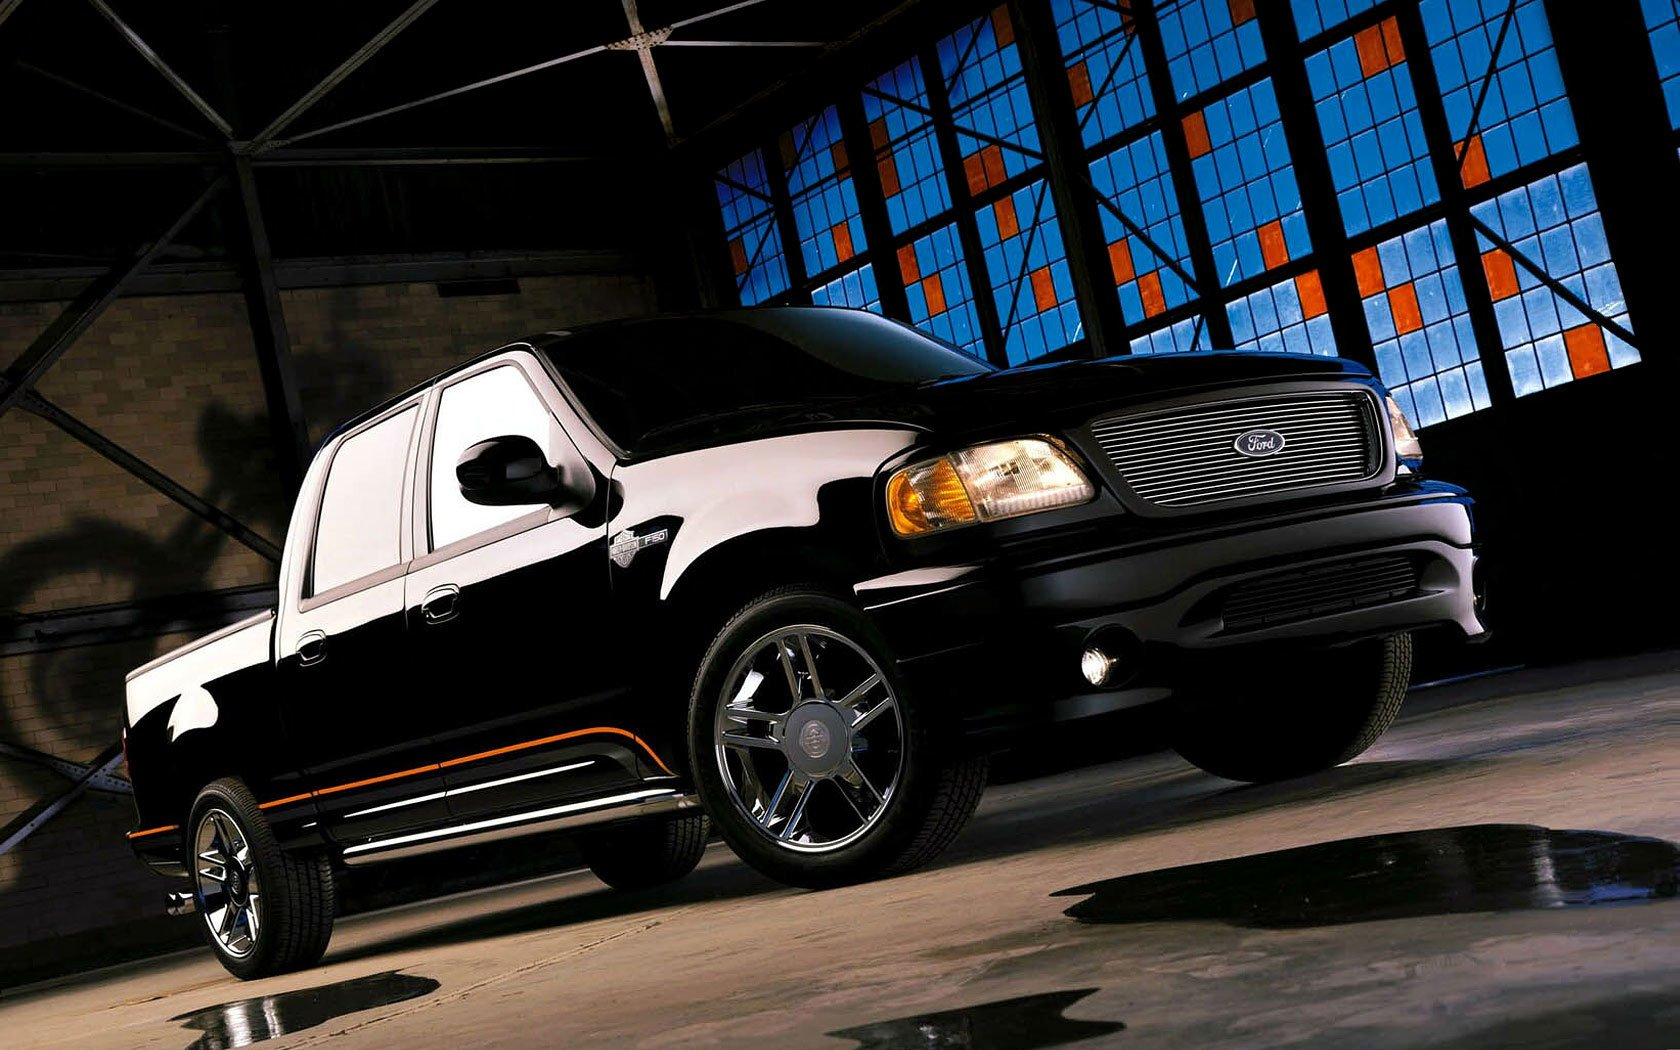 1 Ford F150 HD Wallpapers | Background